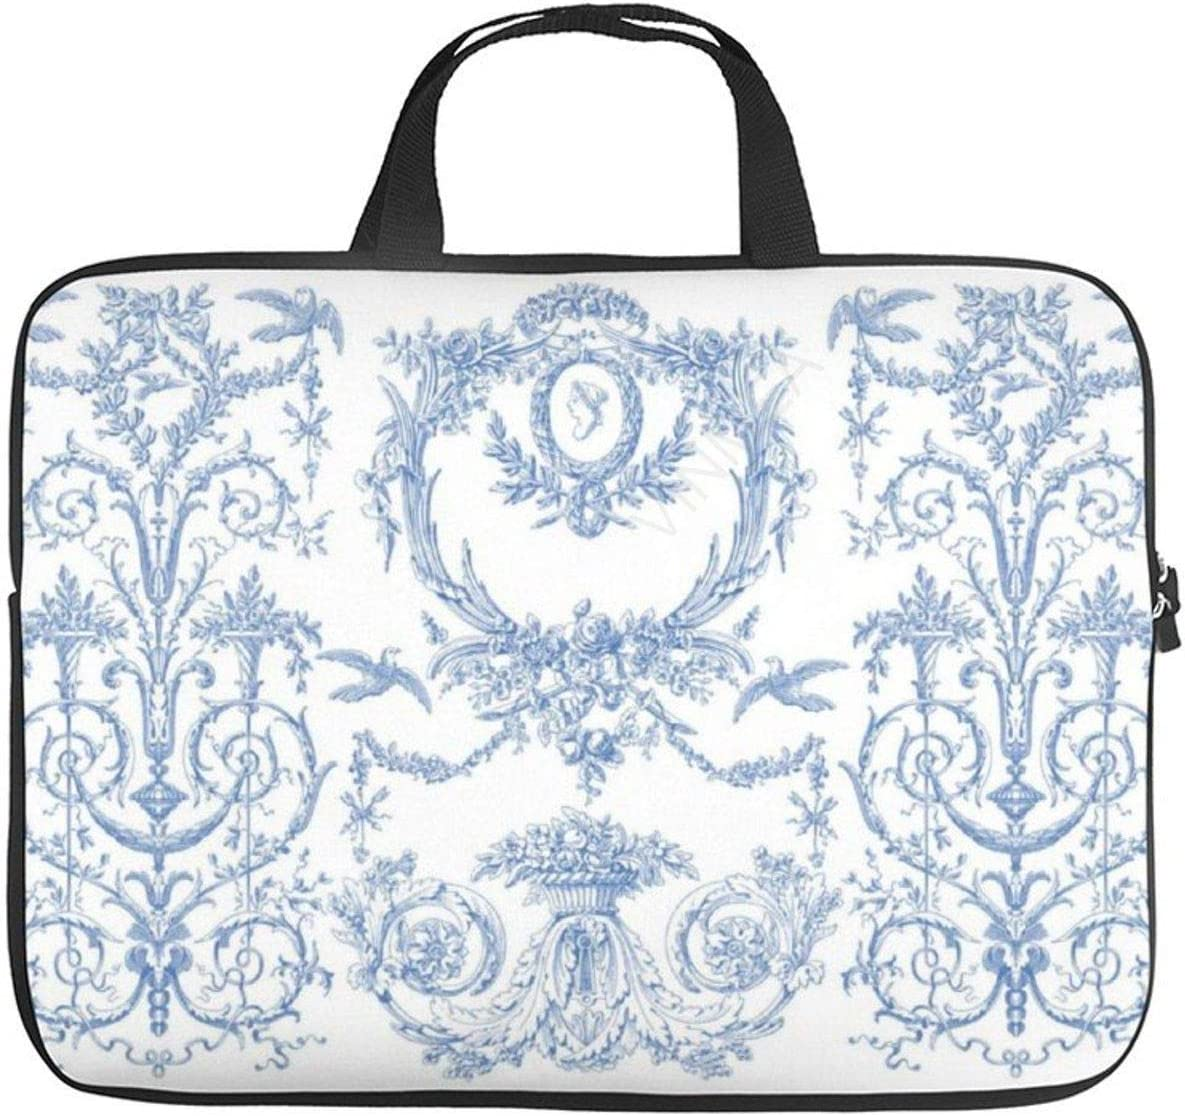 17 Inch Laptop Bag with Handle Capetian Toile Blueberry Laptop Briefcase for Office School Men & Women Teens